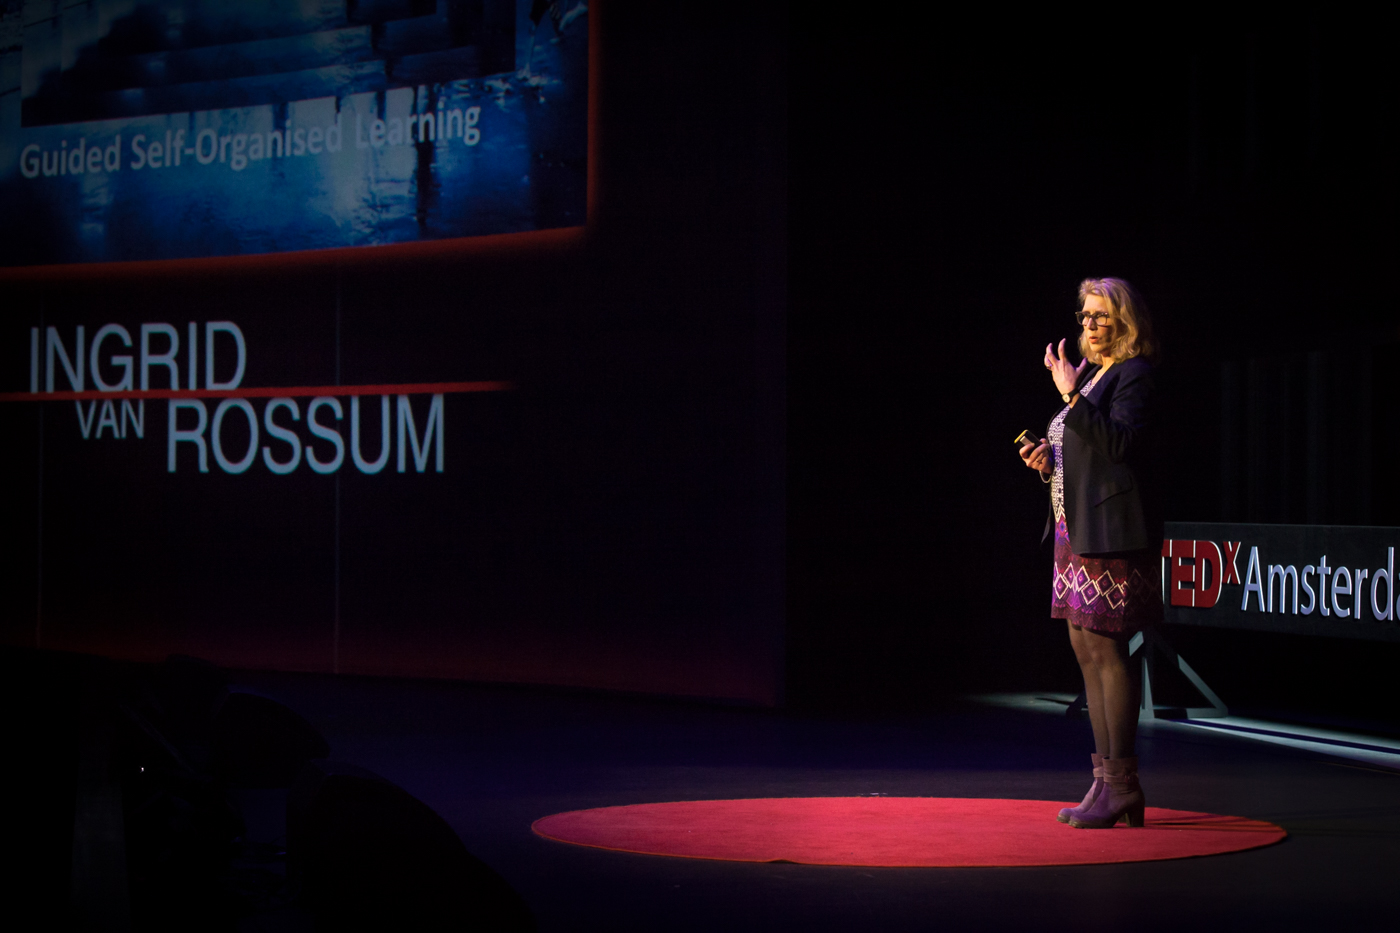 Ingrid van Rossum – Changing the face of education